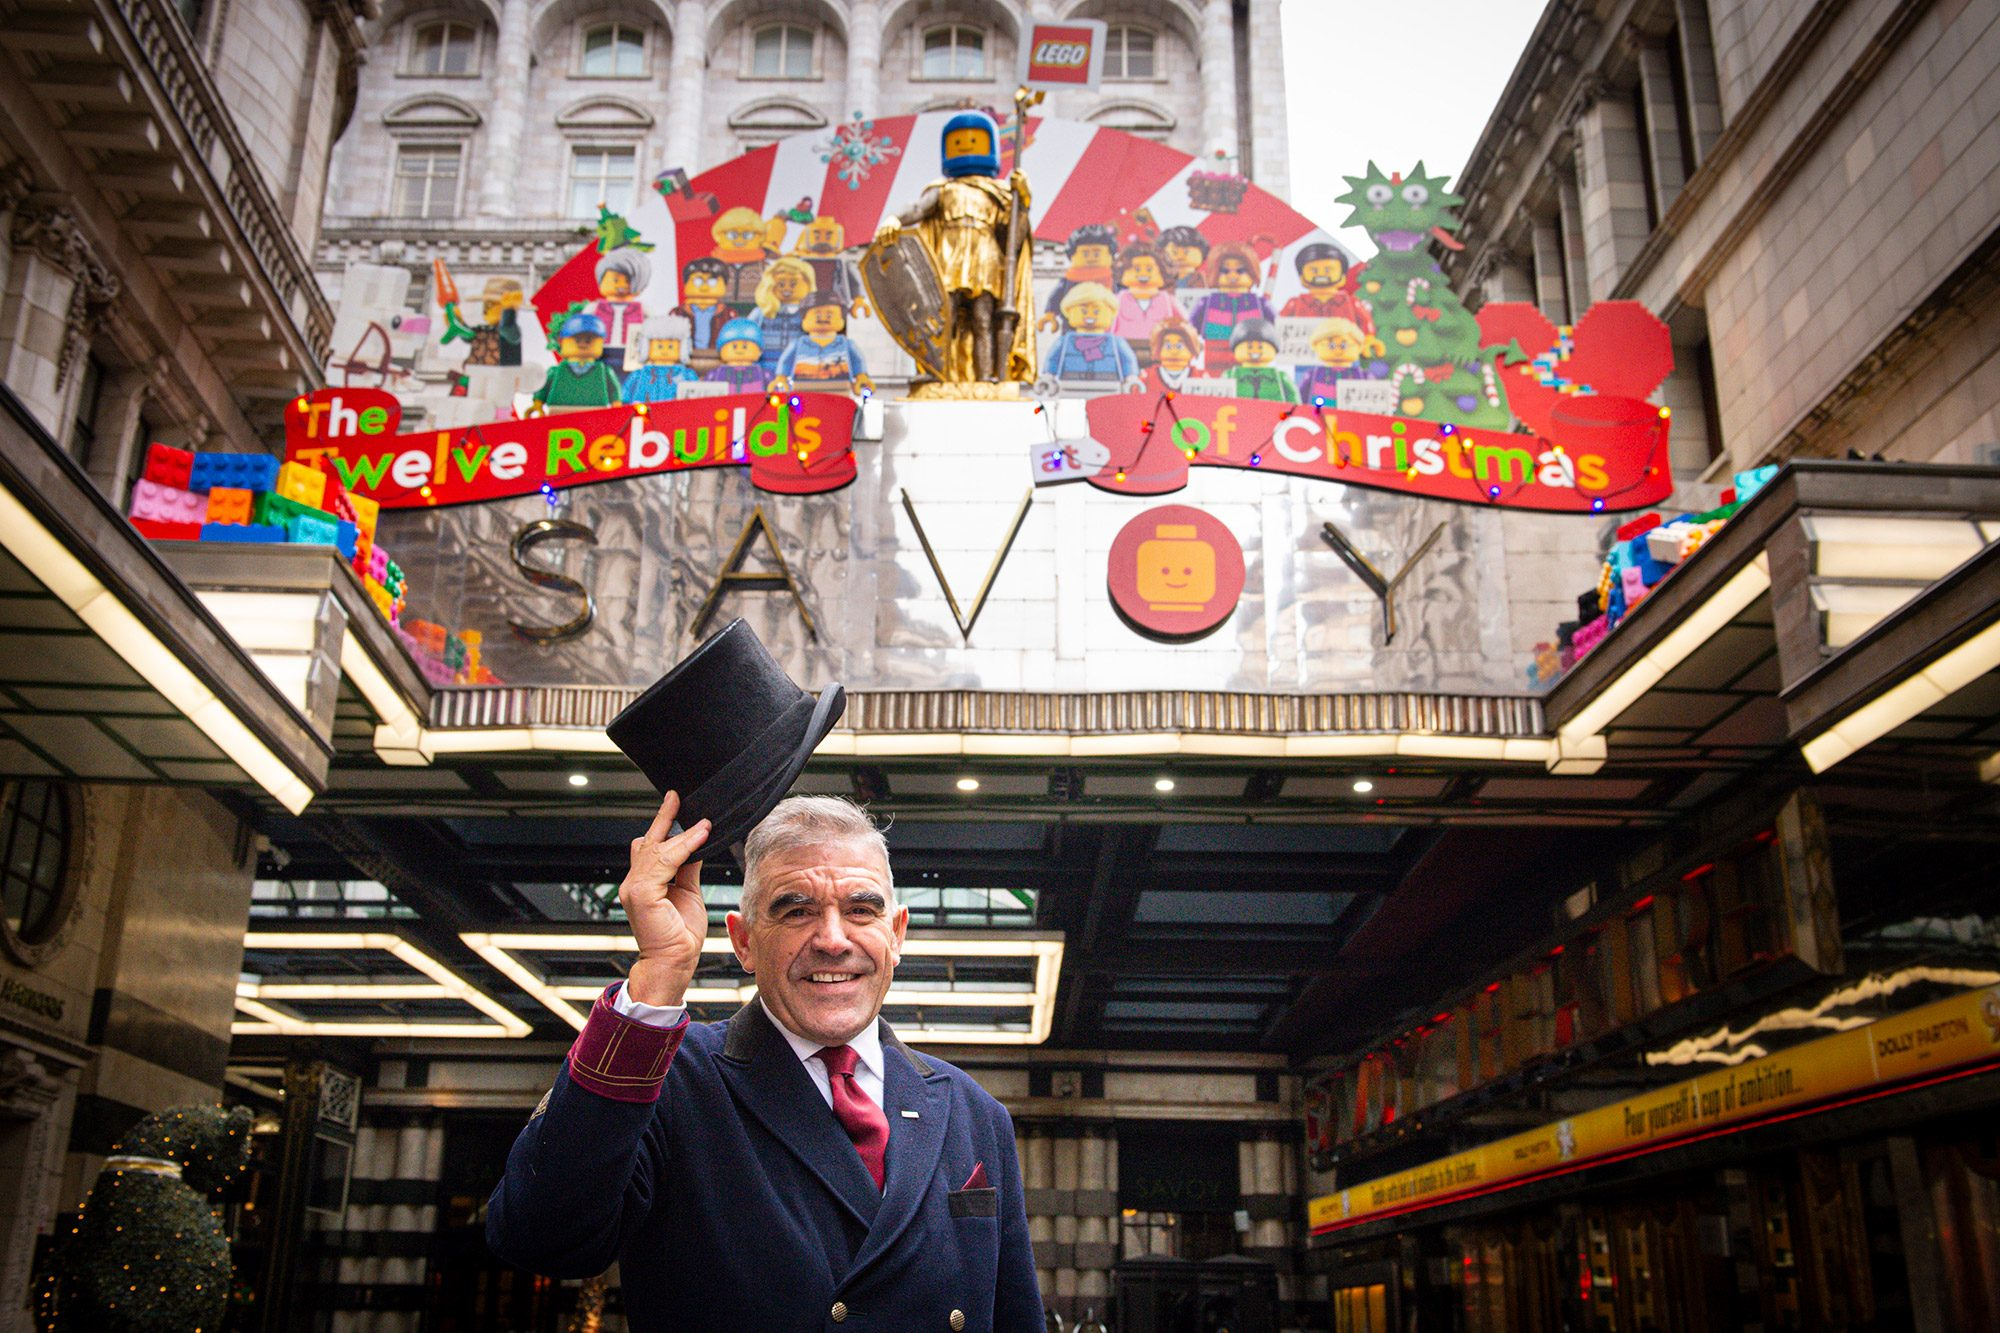 The Twelve Rebuilds of Christmas at the Savoy